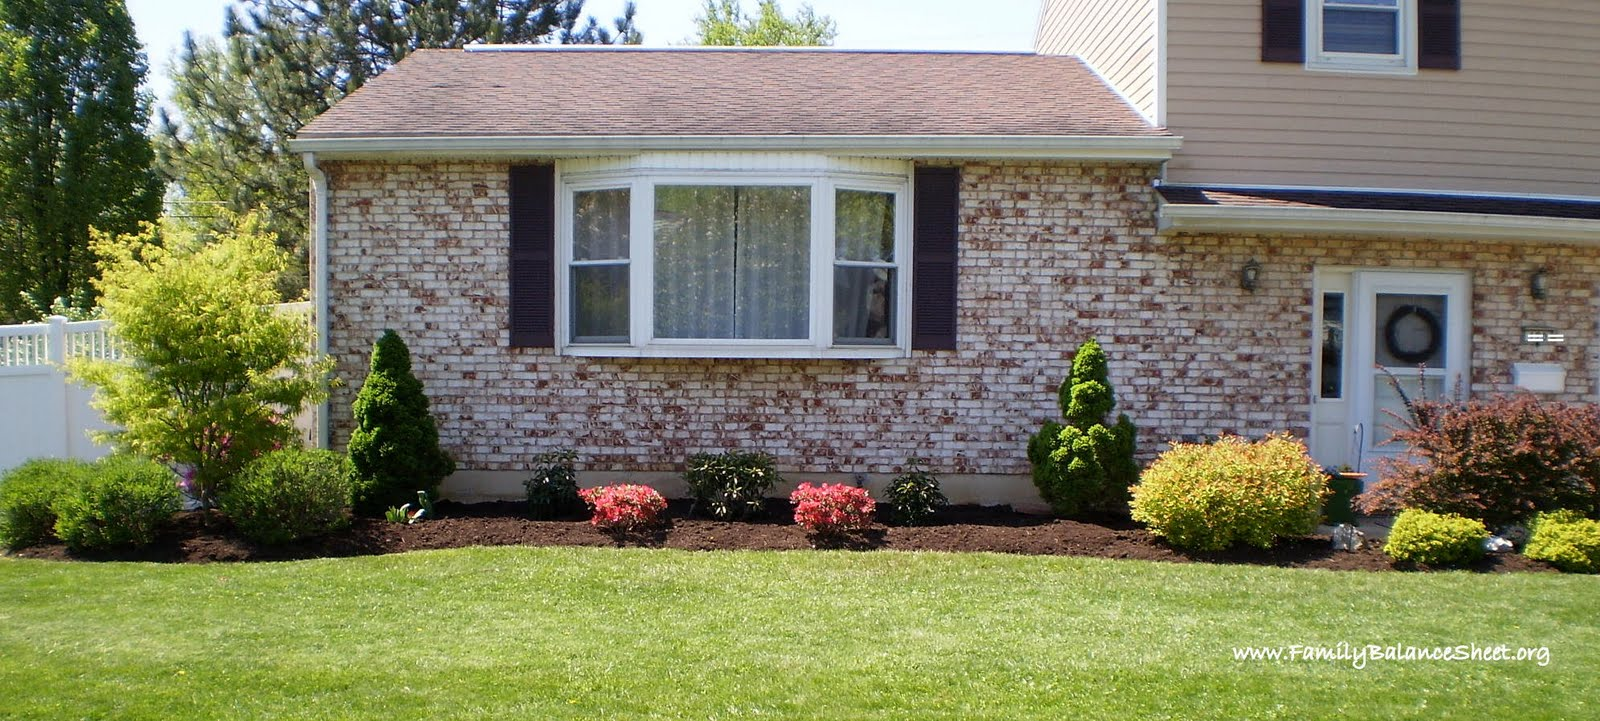 15 tips to help you design your front yard save money too for Front lawn design